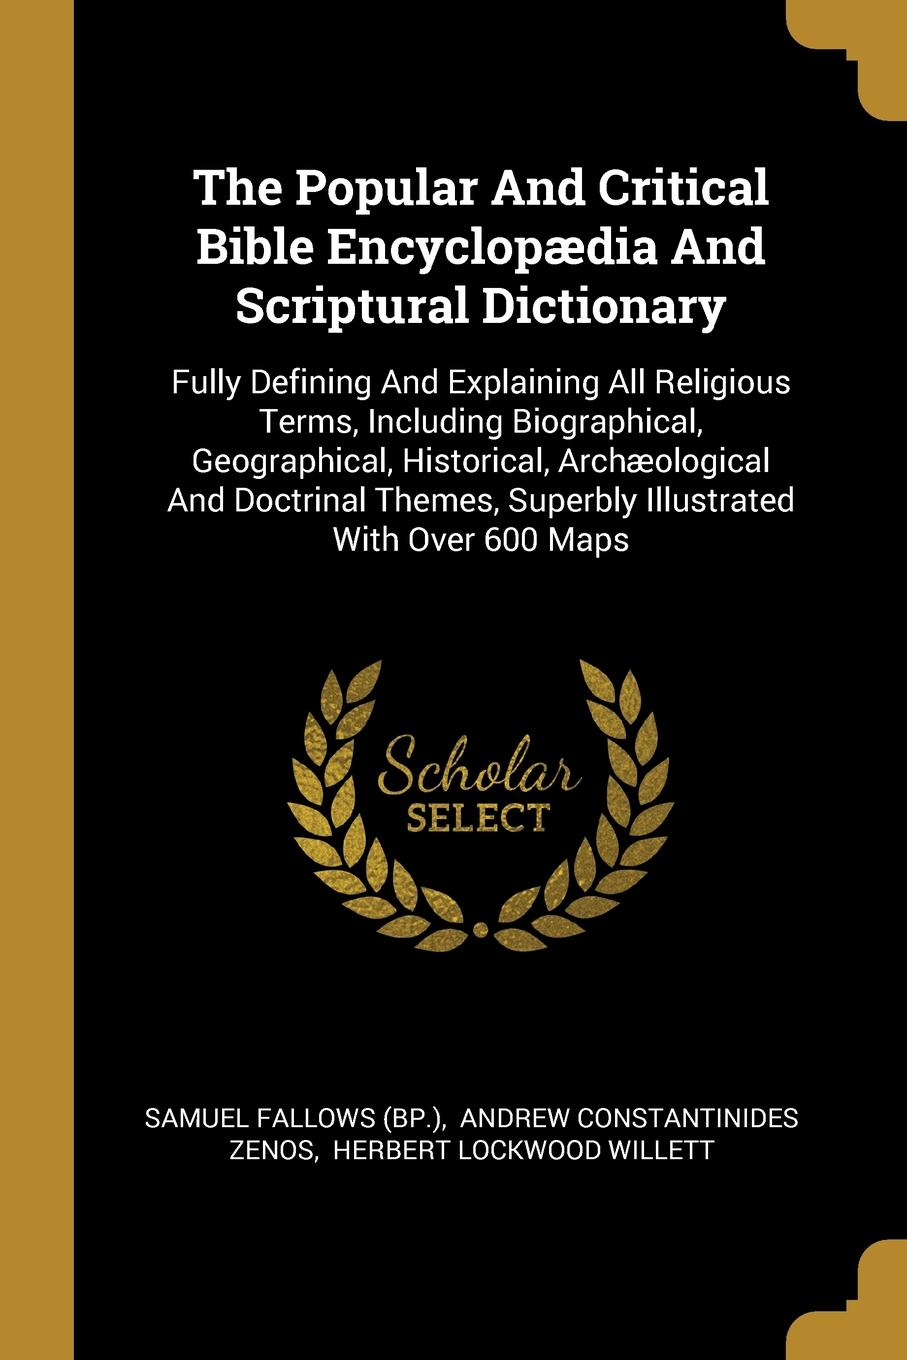 Samuel Fallows (Bp.). The Popular And Critical Bible Encyclopaedia And Scriptural Dictionary. Fully Defining And Explaining All Religious Terms, Including Biographical, Geographical, Historical, Archaeological And Doctrinal Themes, Superbly Illustrated With Over 600 Maps